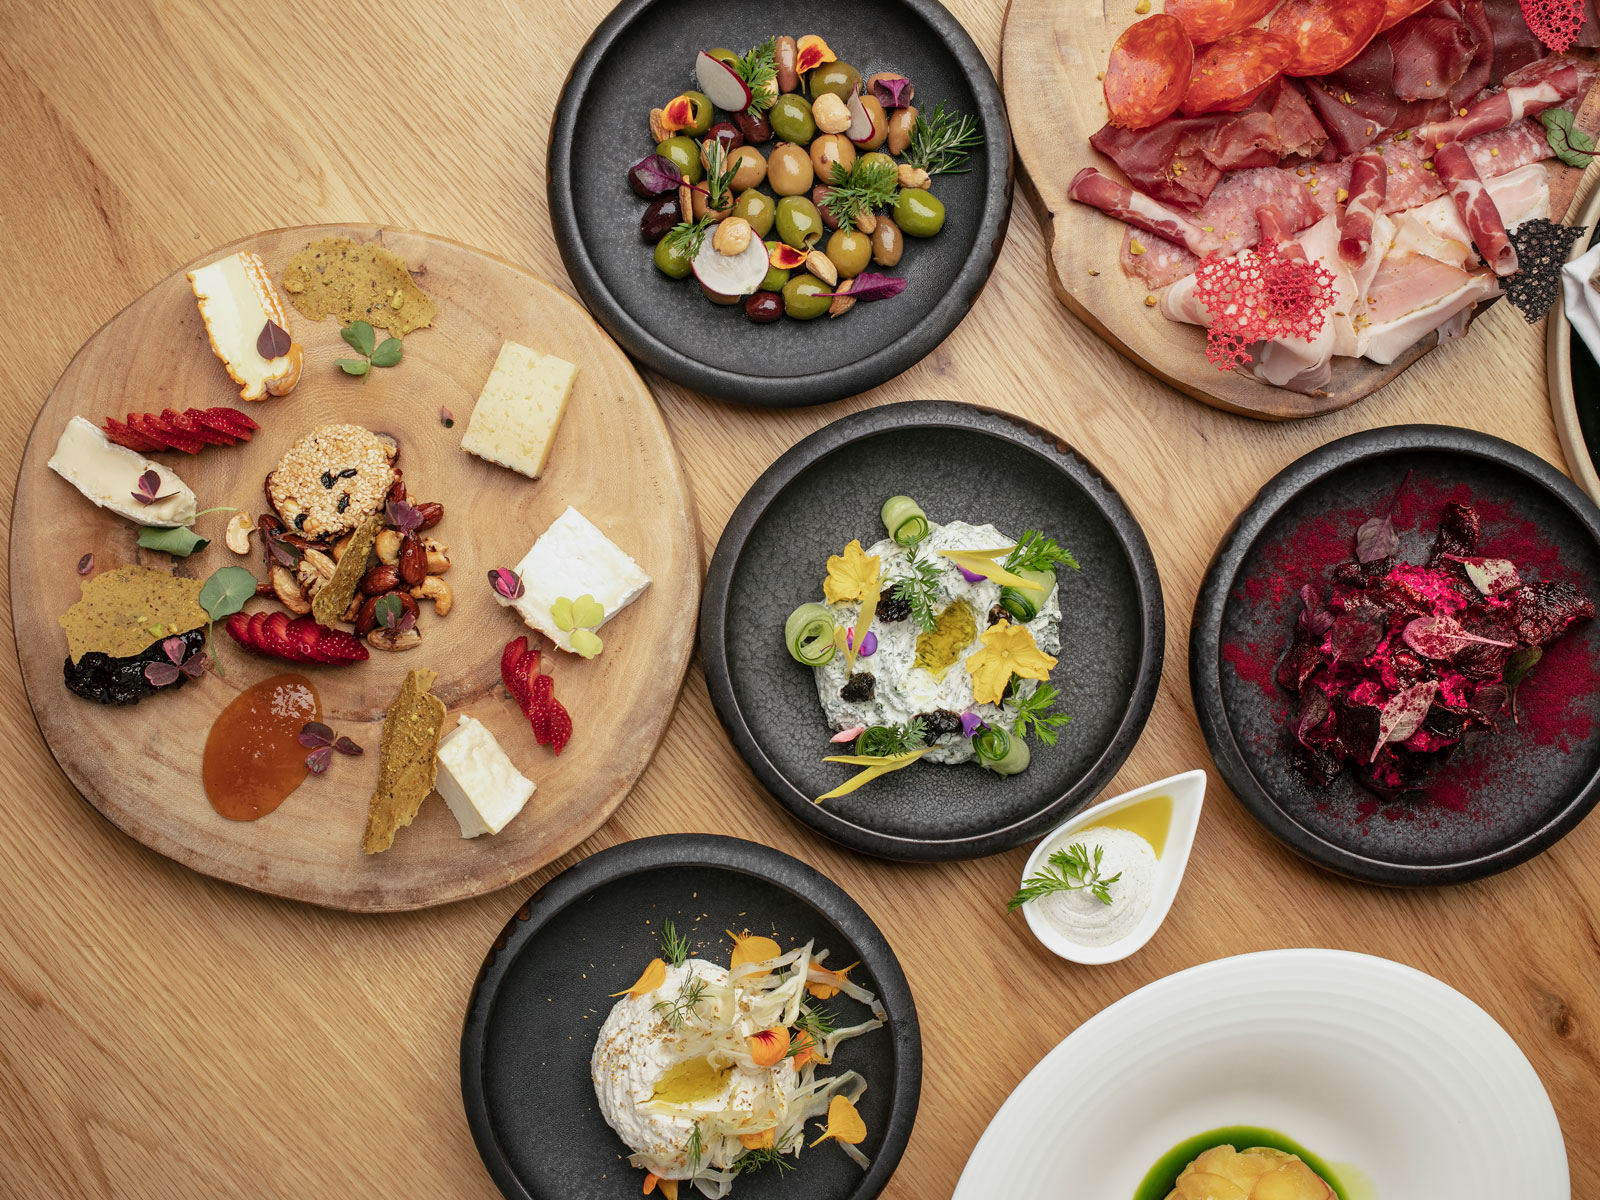 Le Grand Is Downtown L.A.'s Mediterranean Seafood Restaurant for the Masses